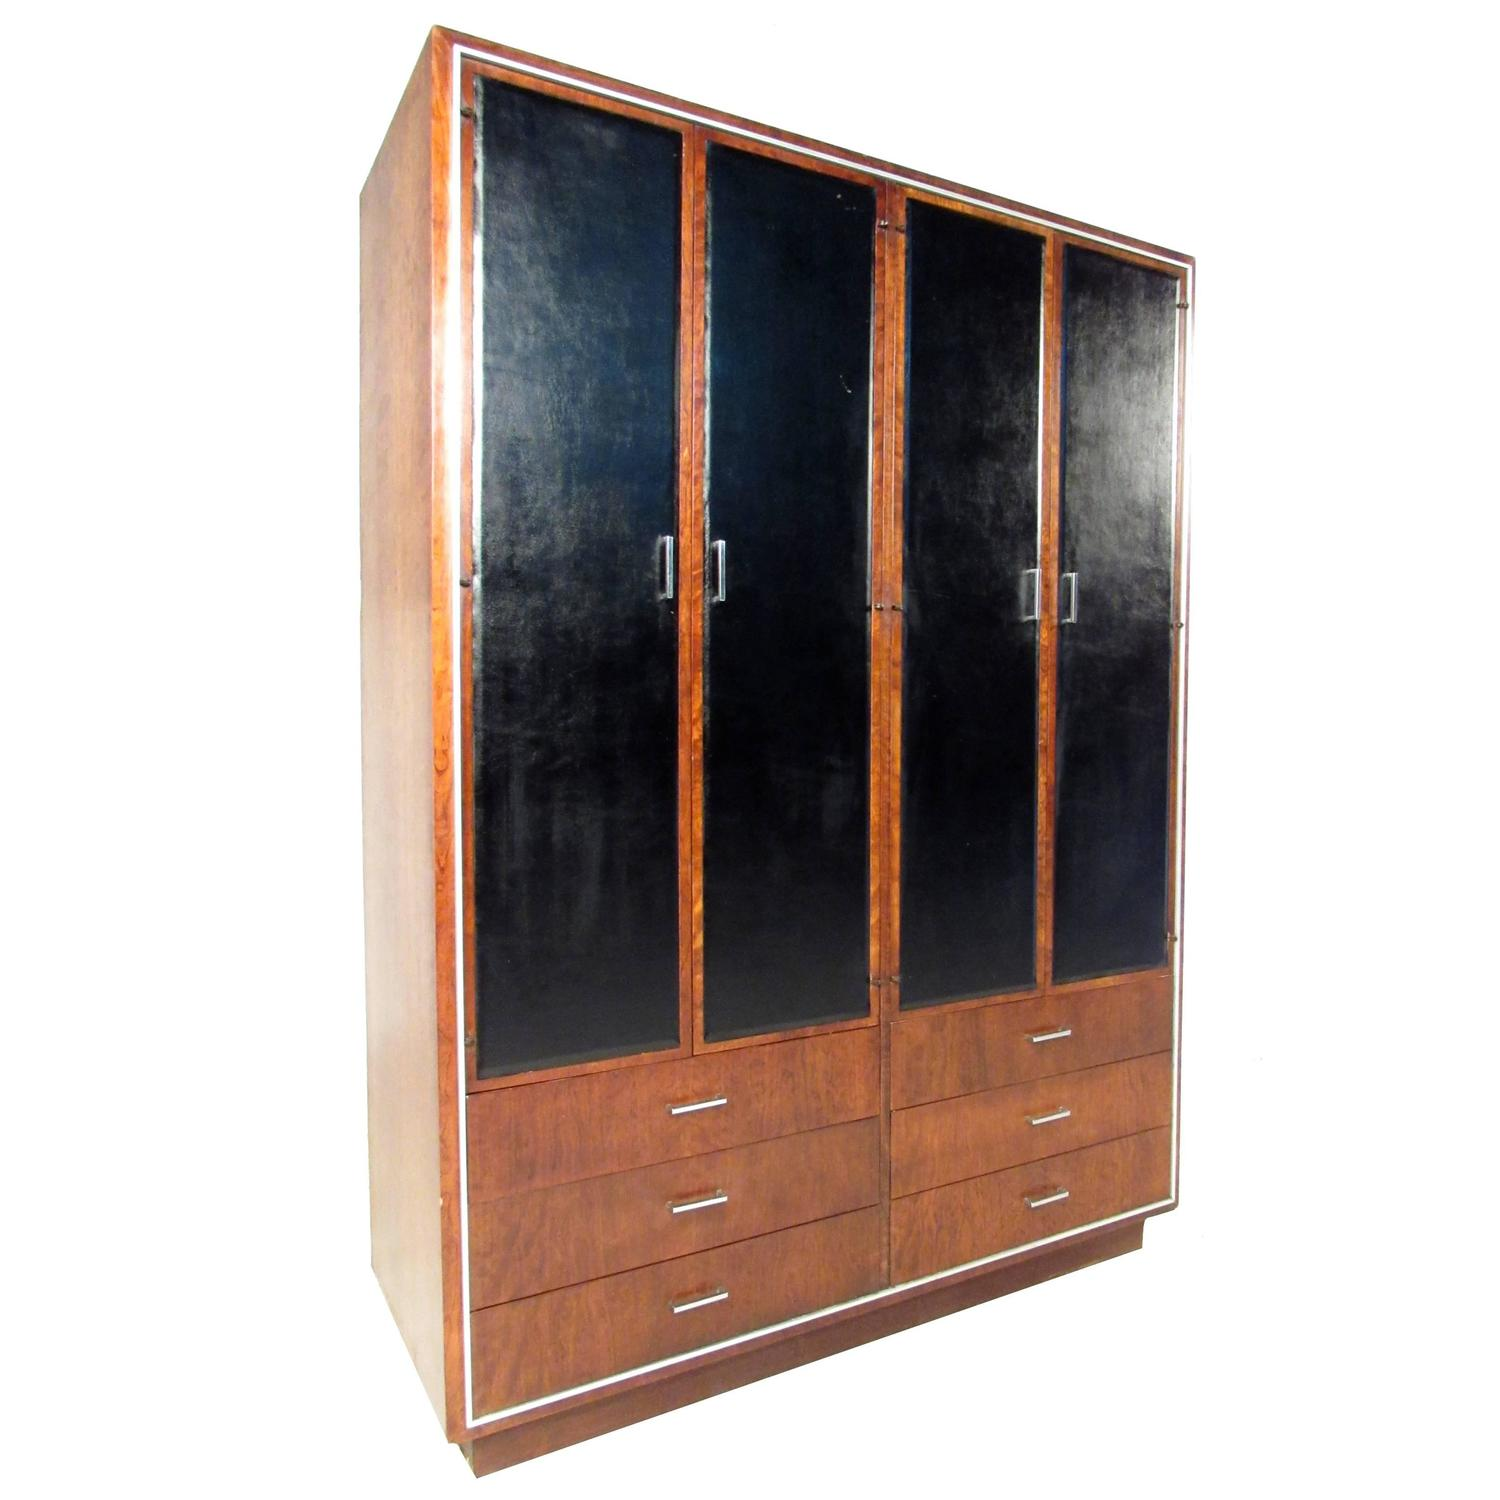 armoire modern 28 images danish modern teak armoire wardrobe cabinet at 1stdibs barossa. Black Bedroom Furniture Sets. Home Design Ideas